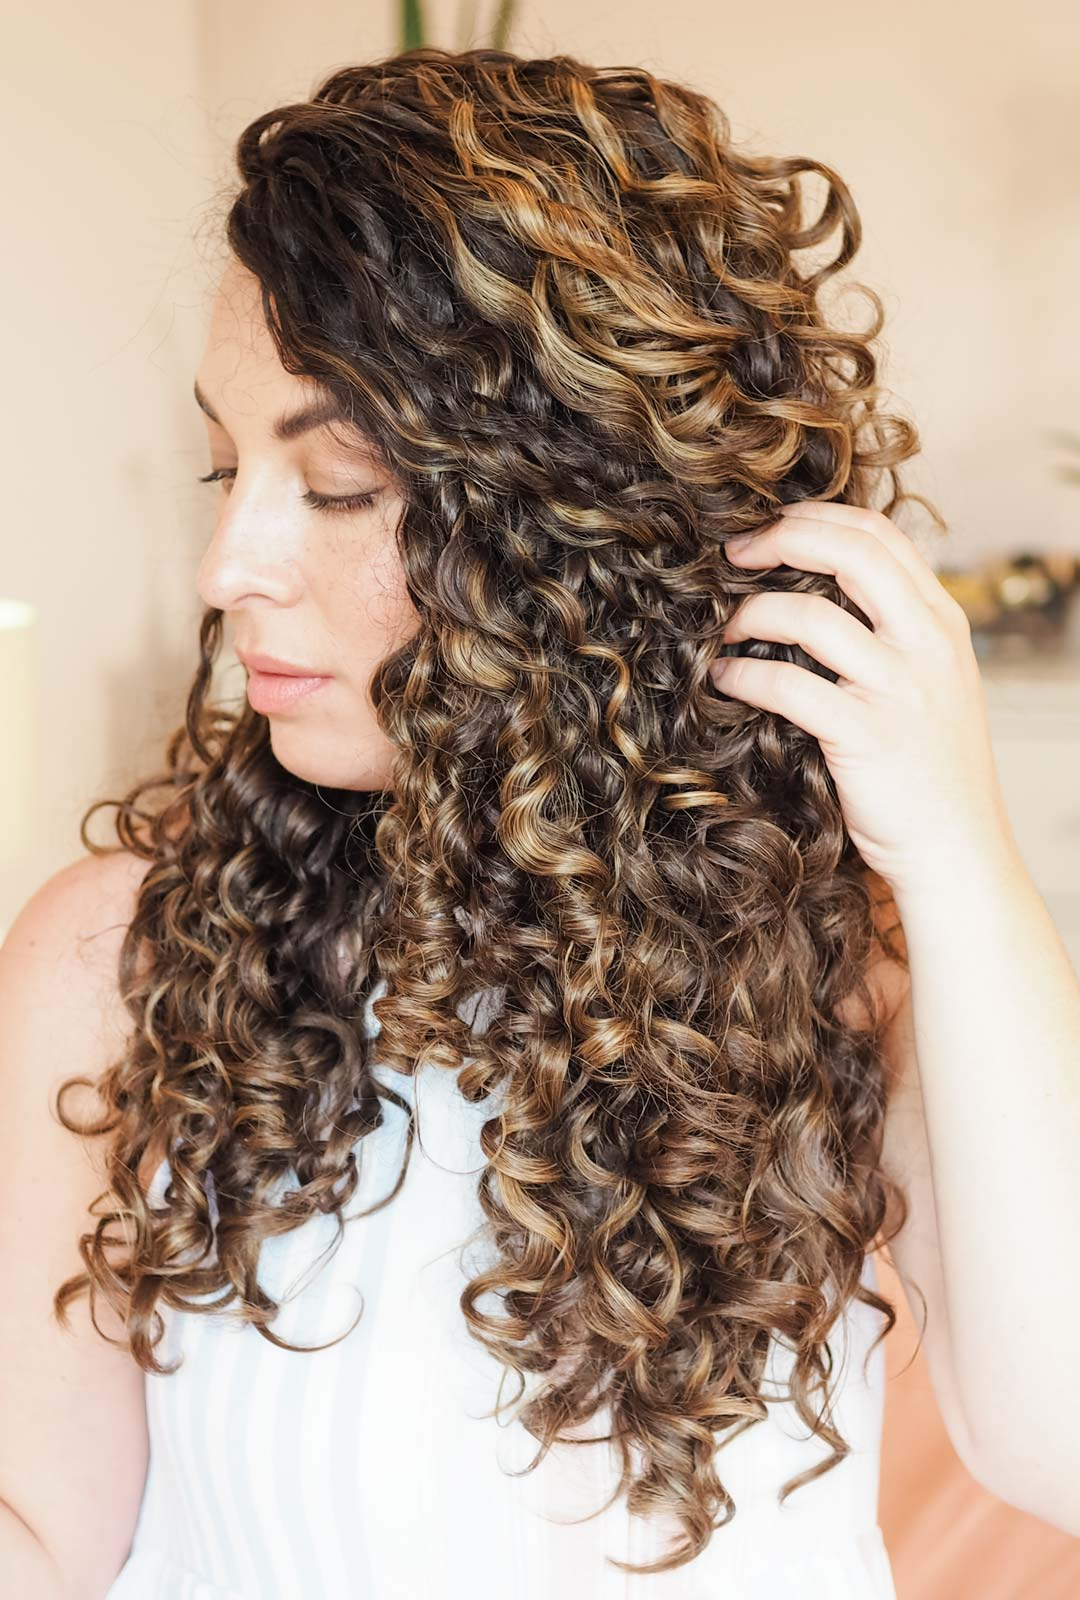 curly hair tips for how to beat halo frizz